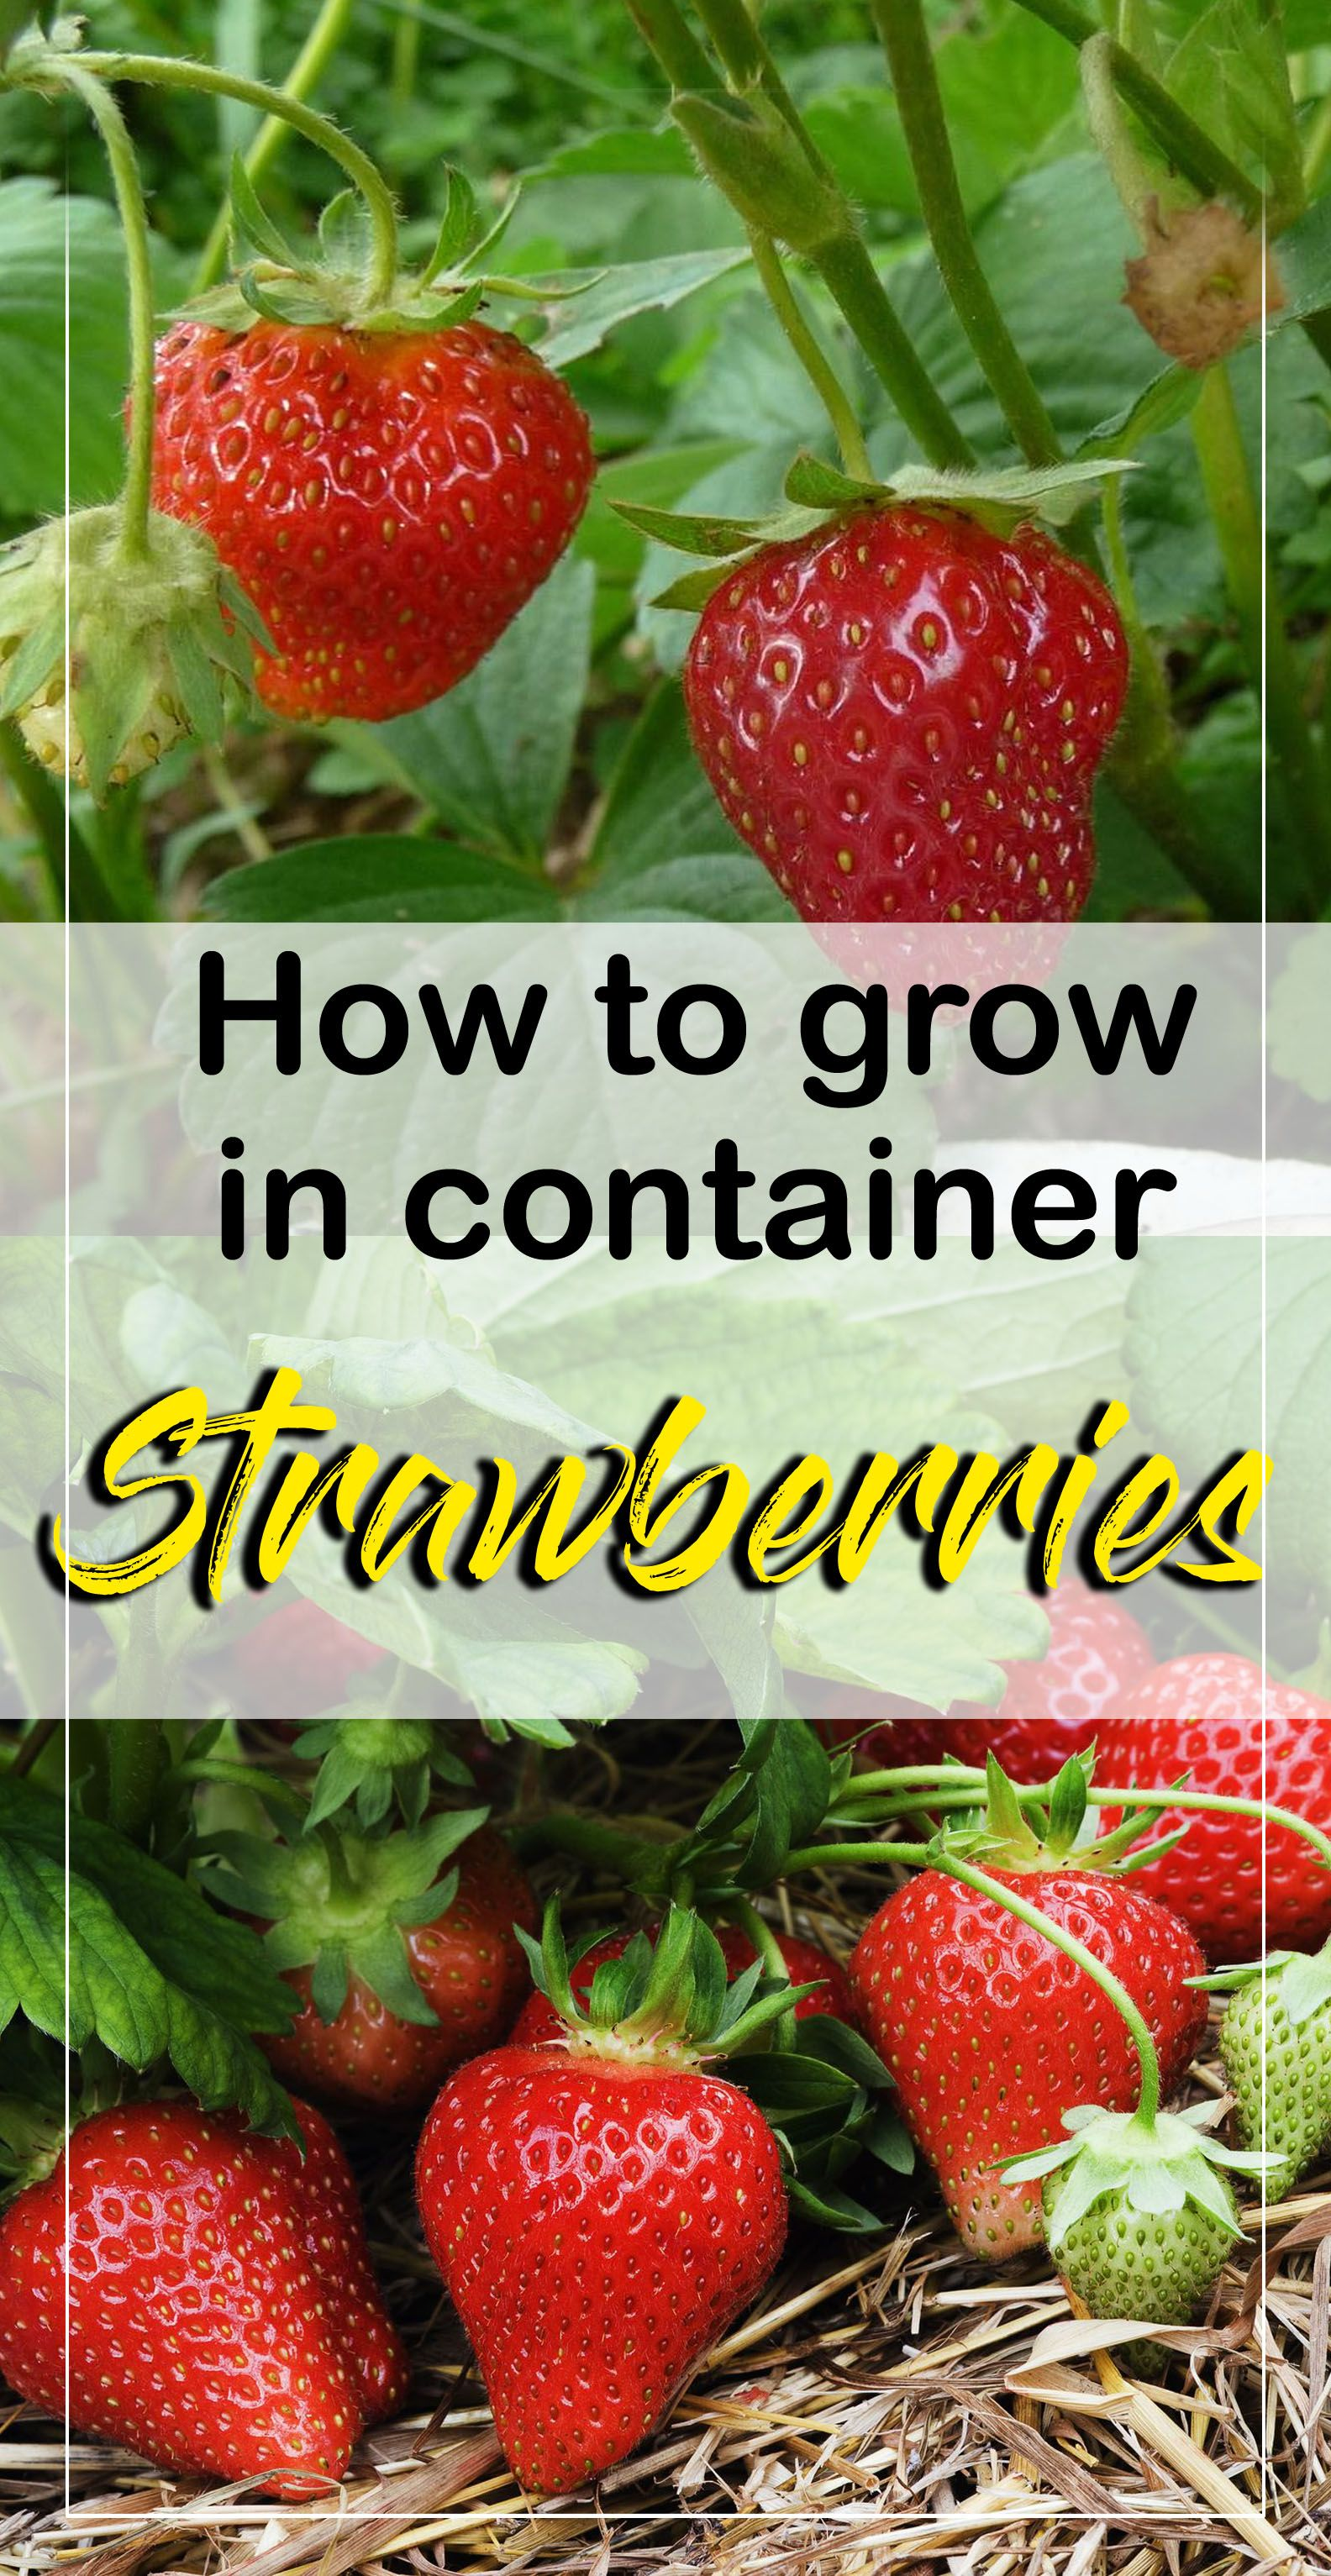 Growing Strawberries In Containers How To Grow Strawberry Naturebring Growing Strawberries In Containers Strawberries In Containers Container Gardening Vegetables